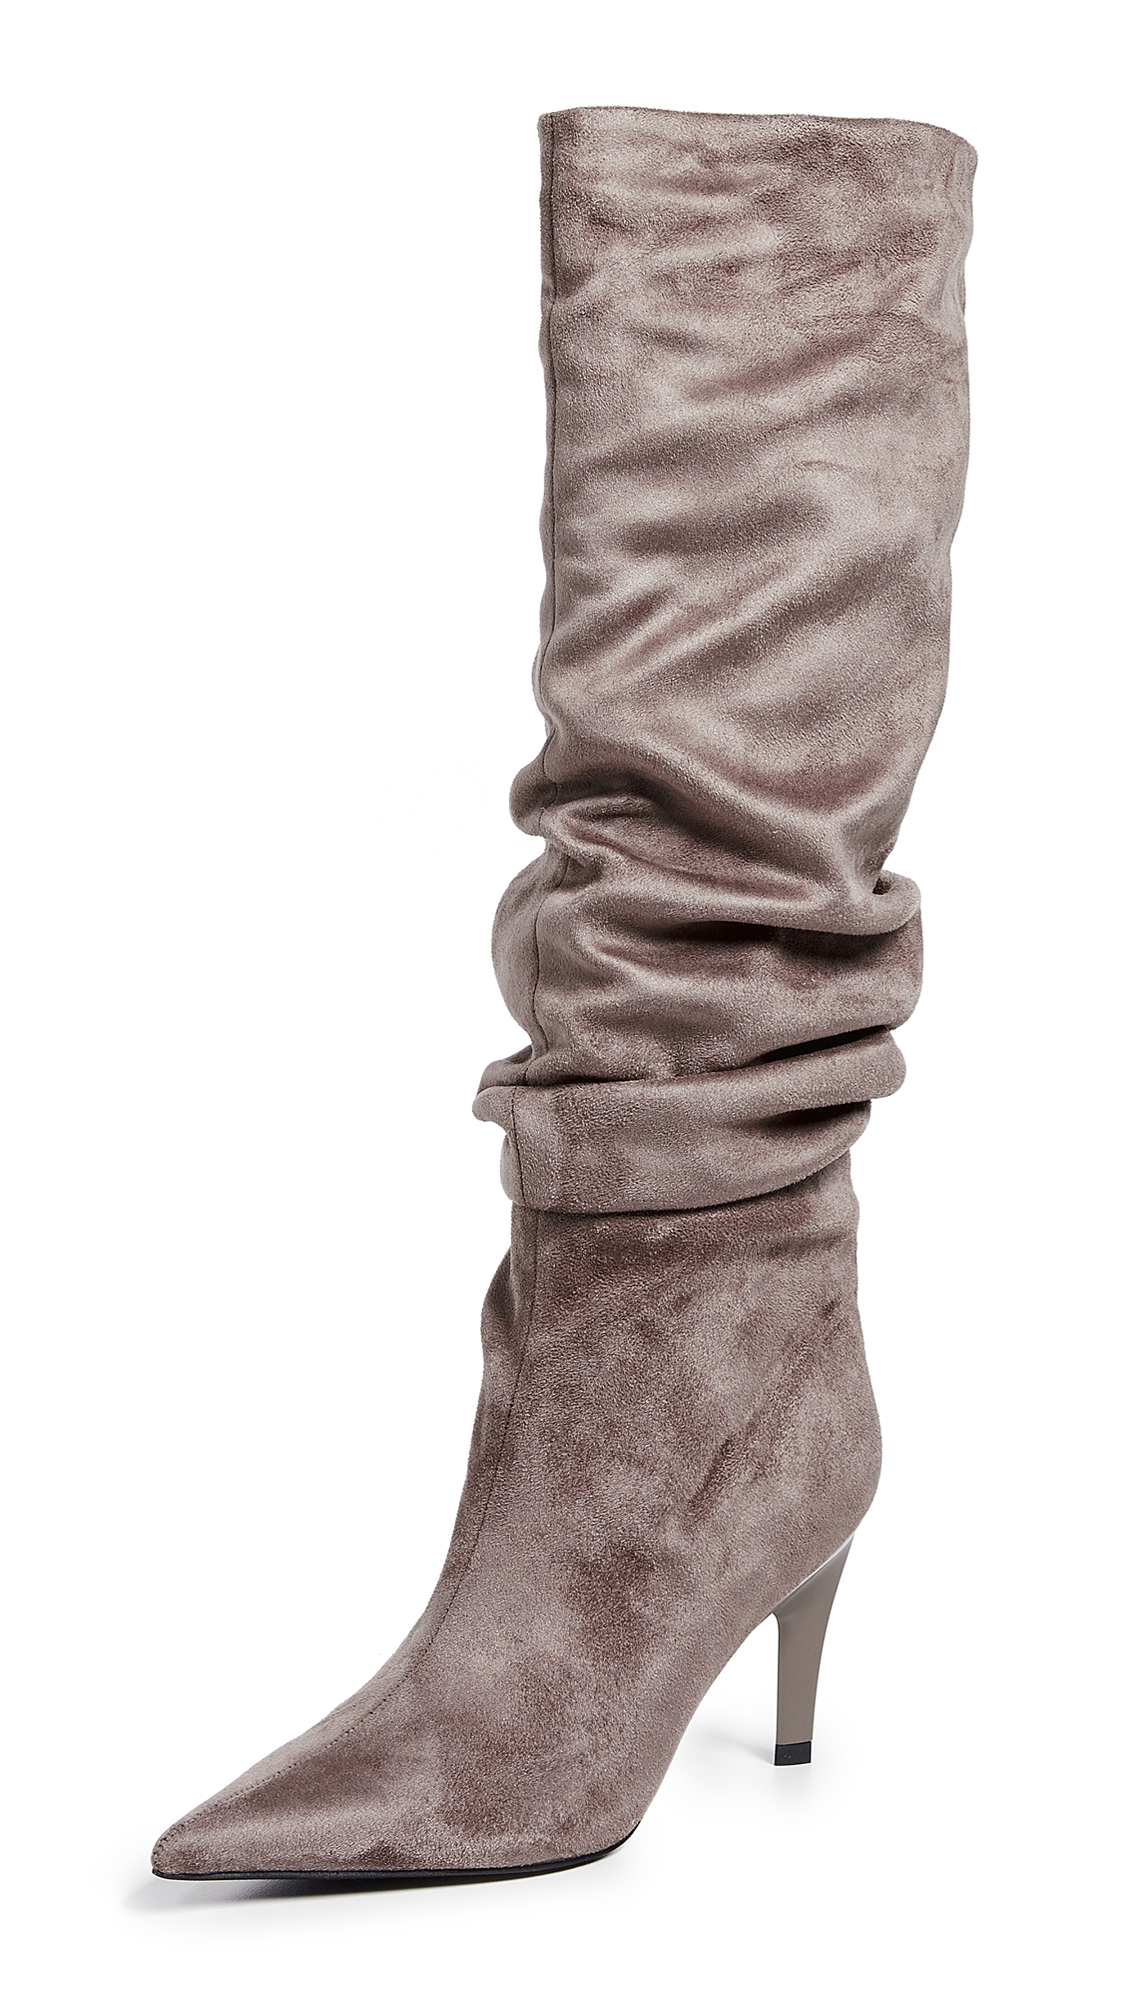 Jeffrey Campbell Brutish Point Toe Boots - Taupe